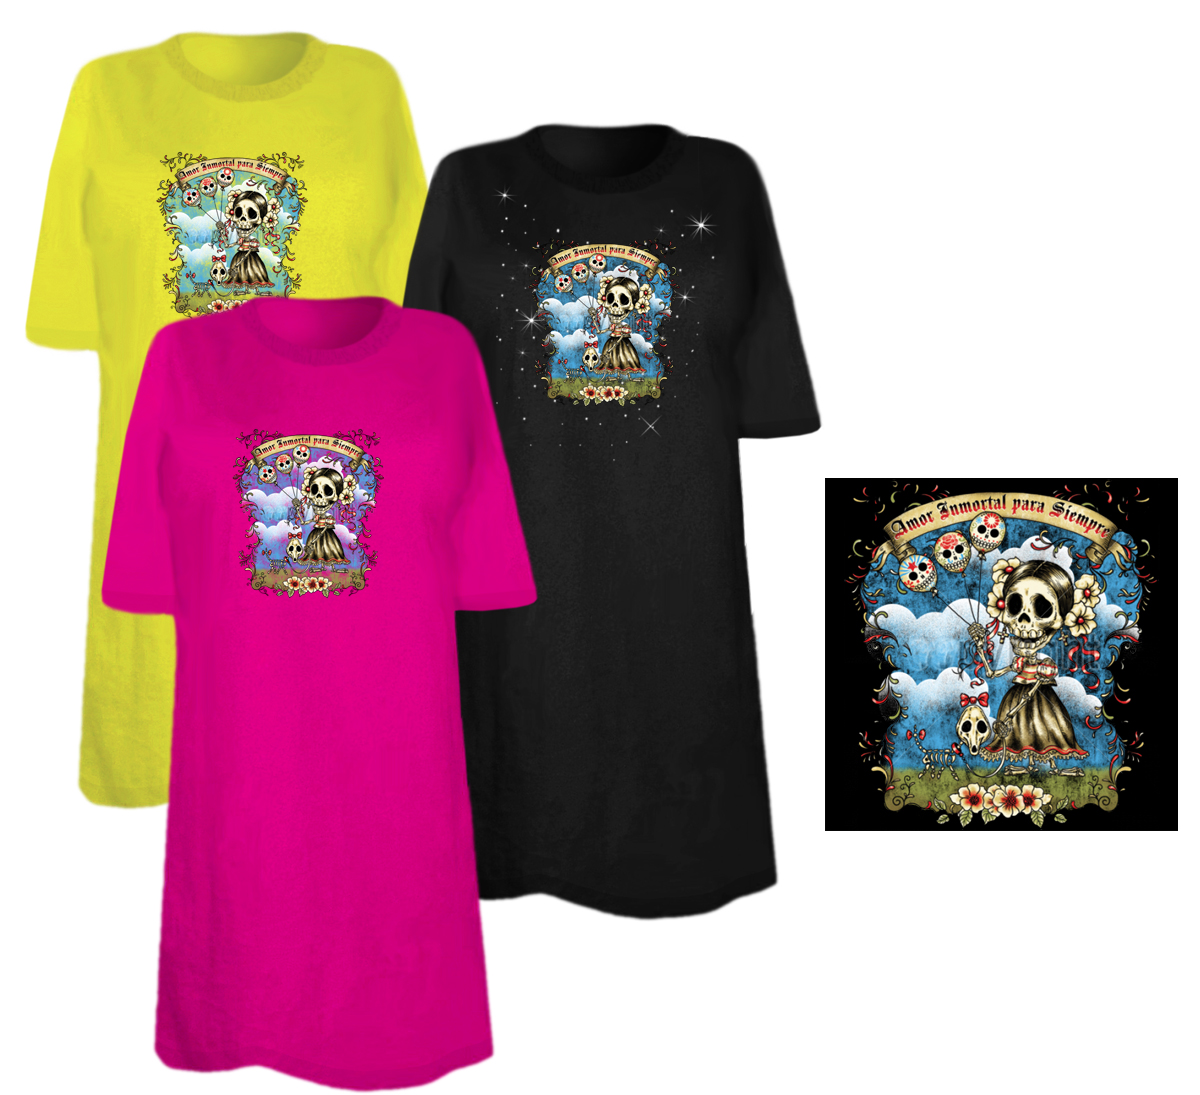 Sale amor immortal para siempre day of the dead plus size for 3x shirts on sale